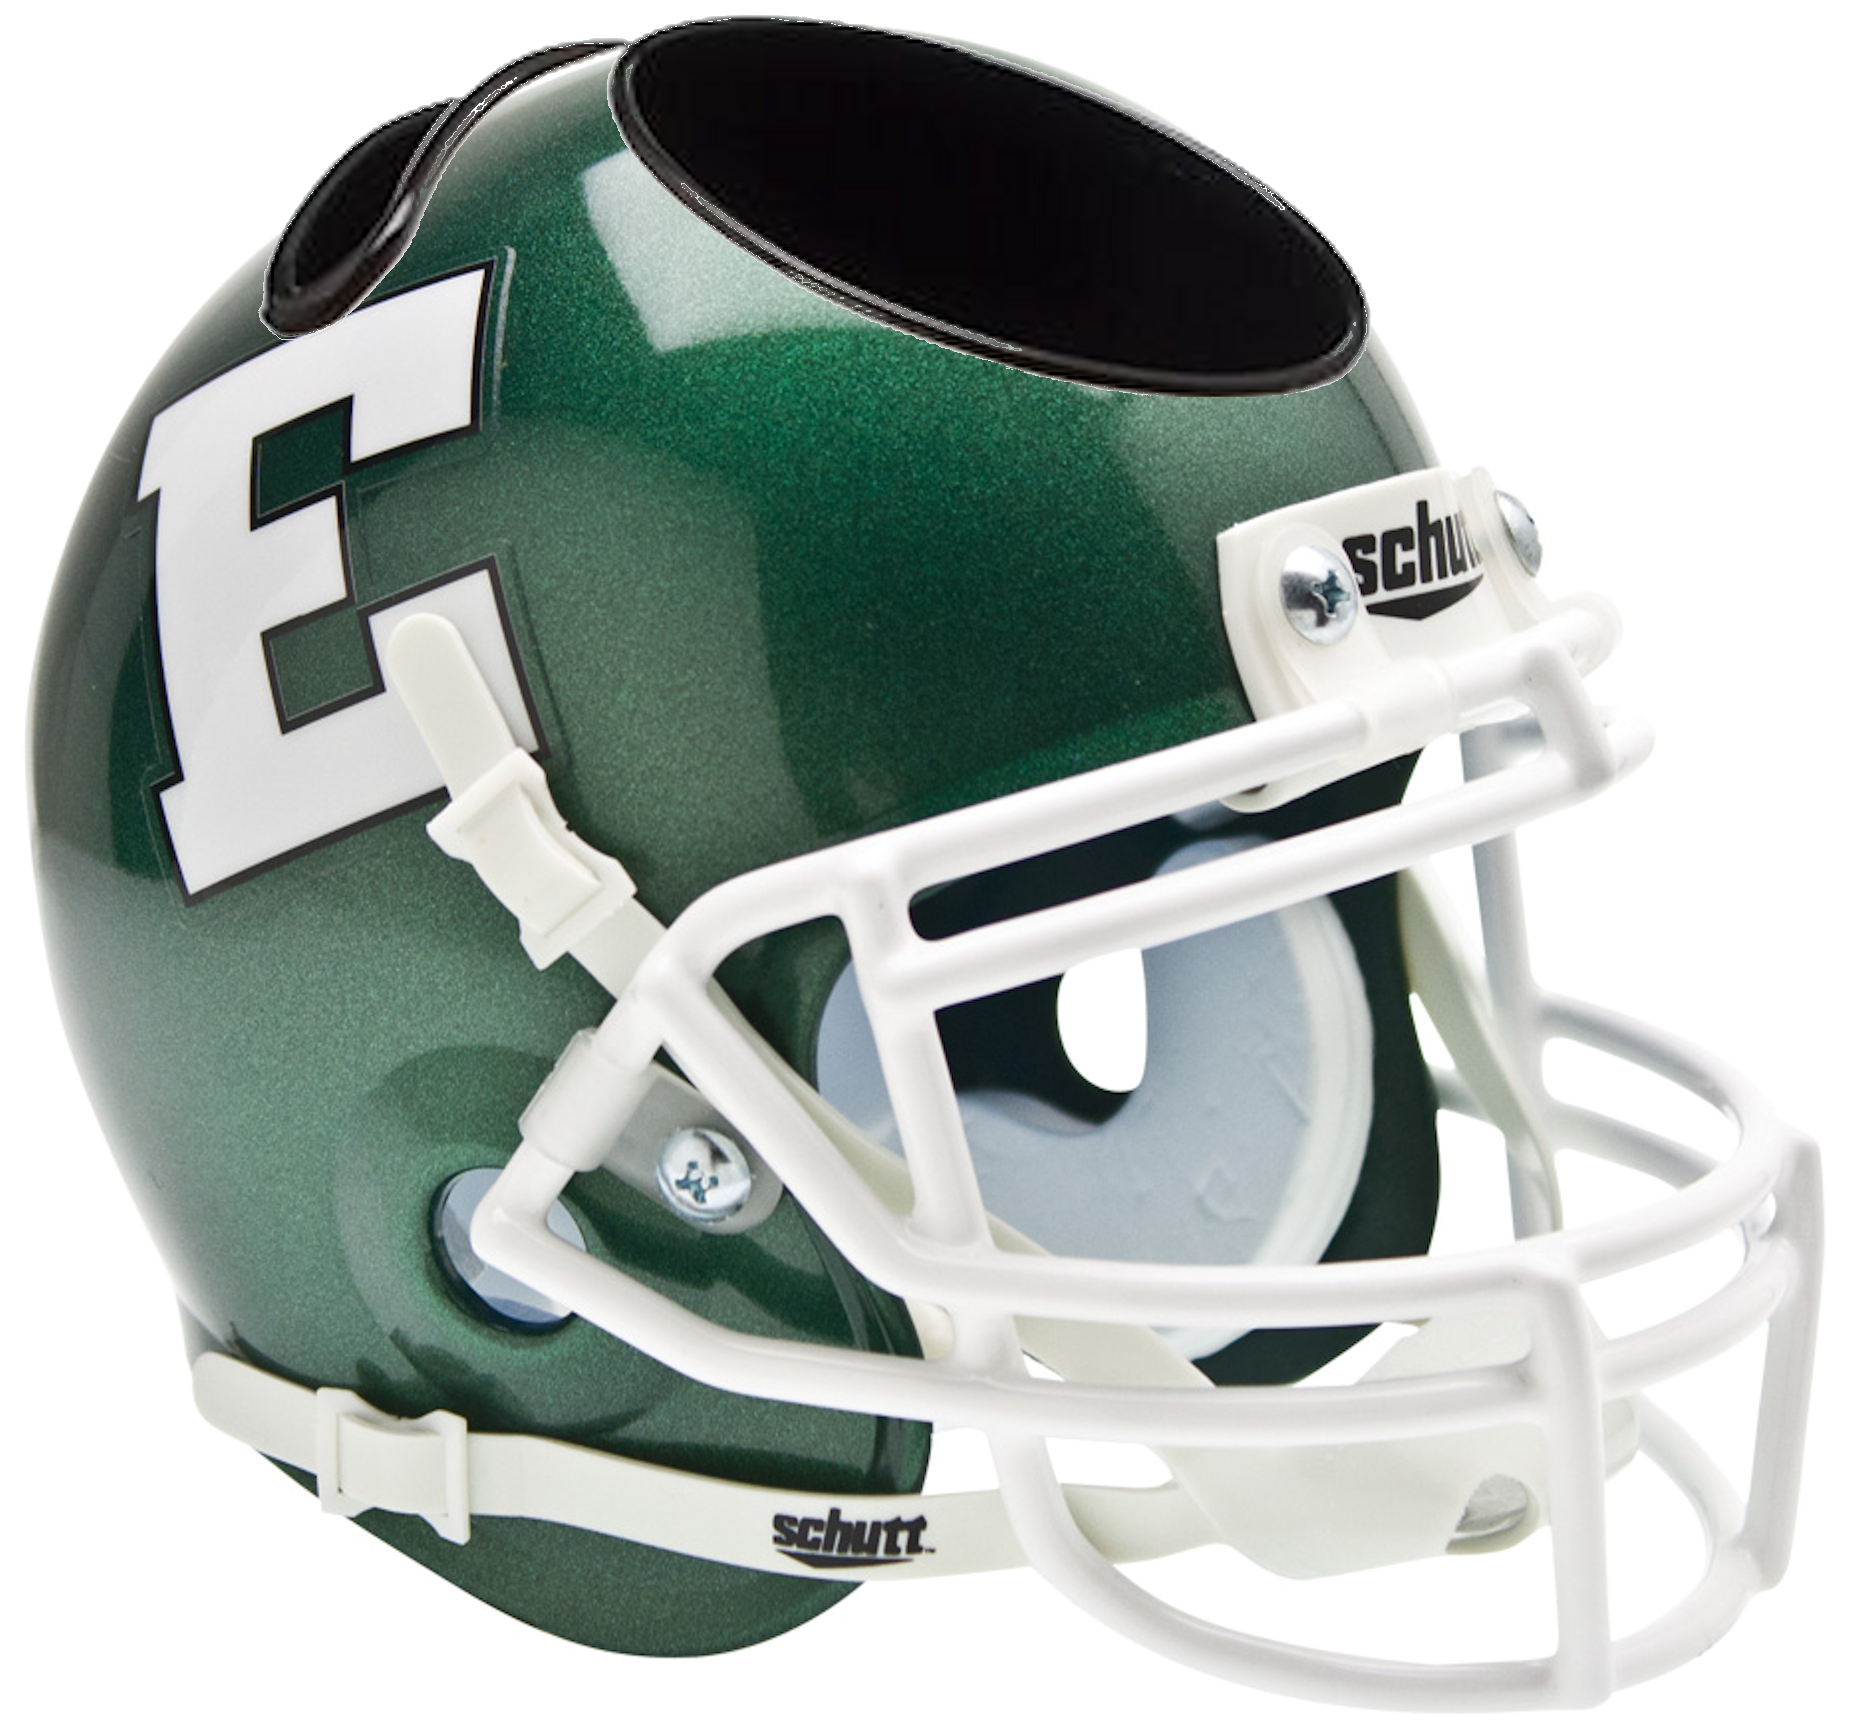 Eastern Michigan Eagles Miniature Football Helmet Desk Caddy